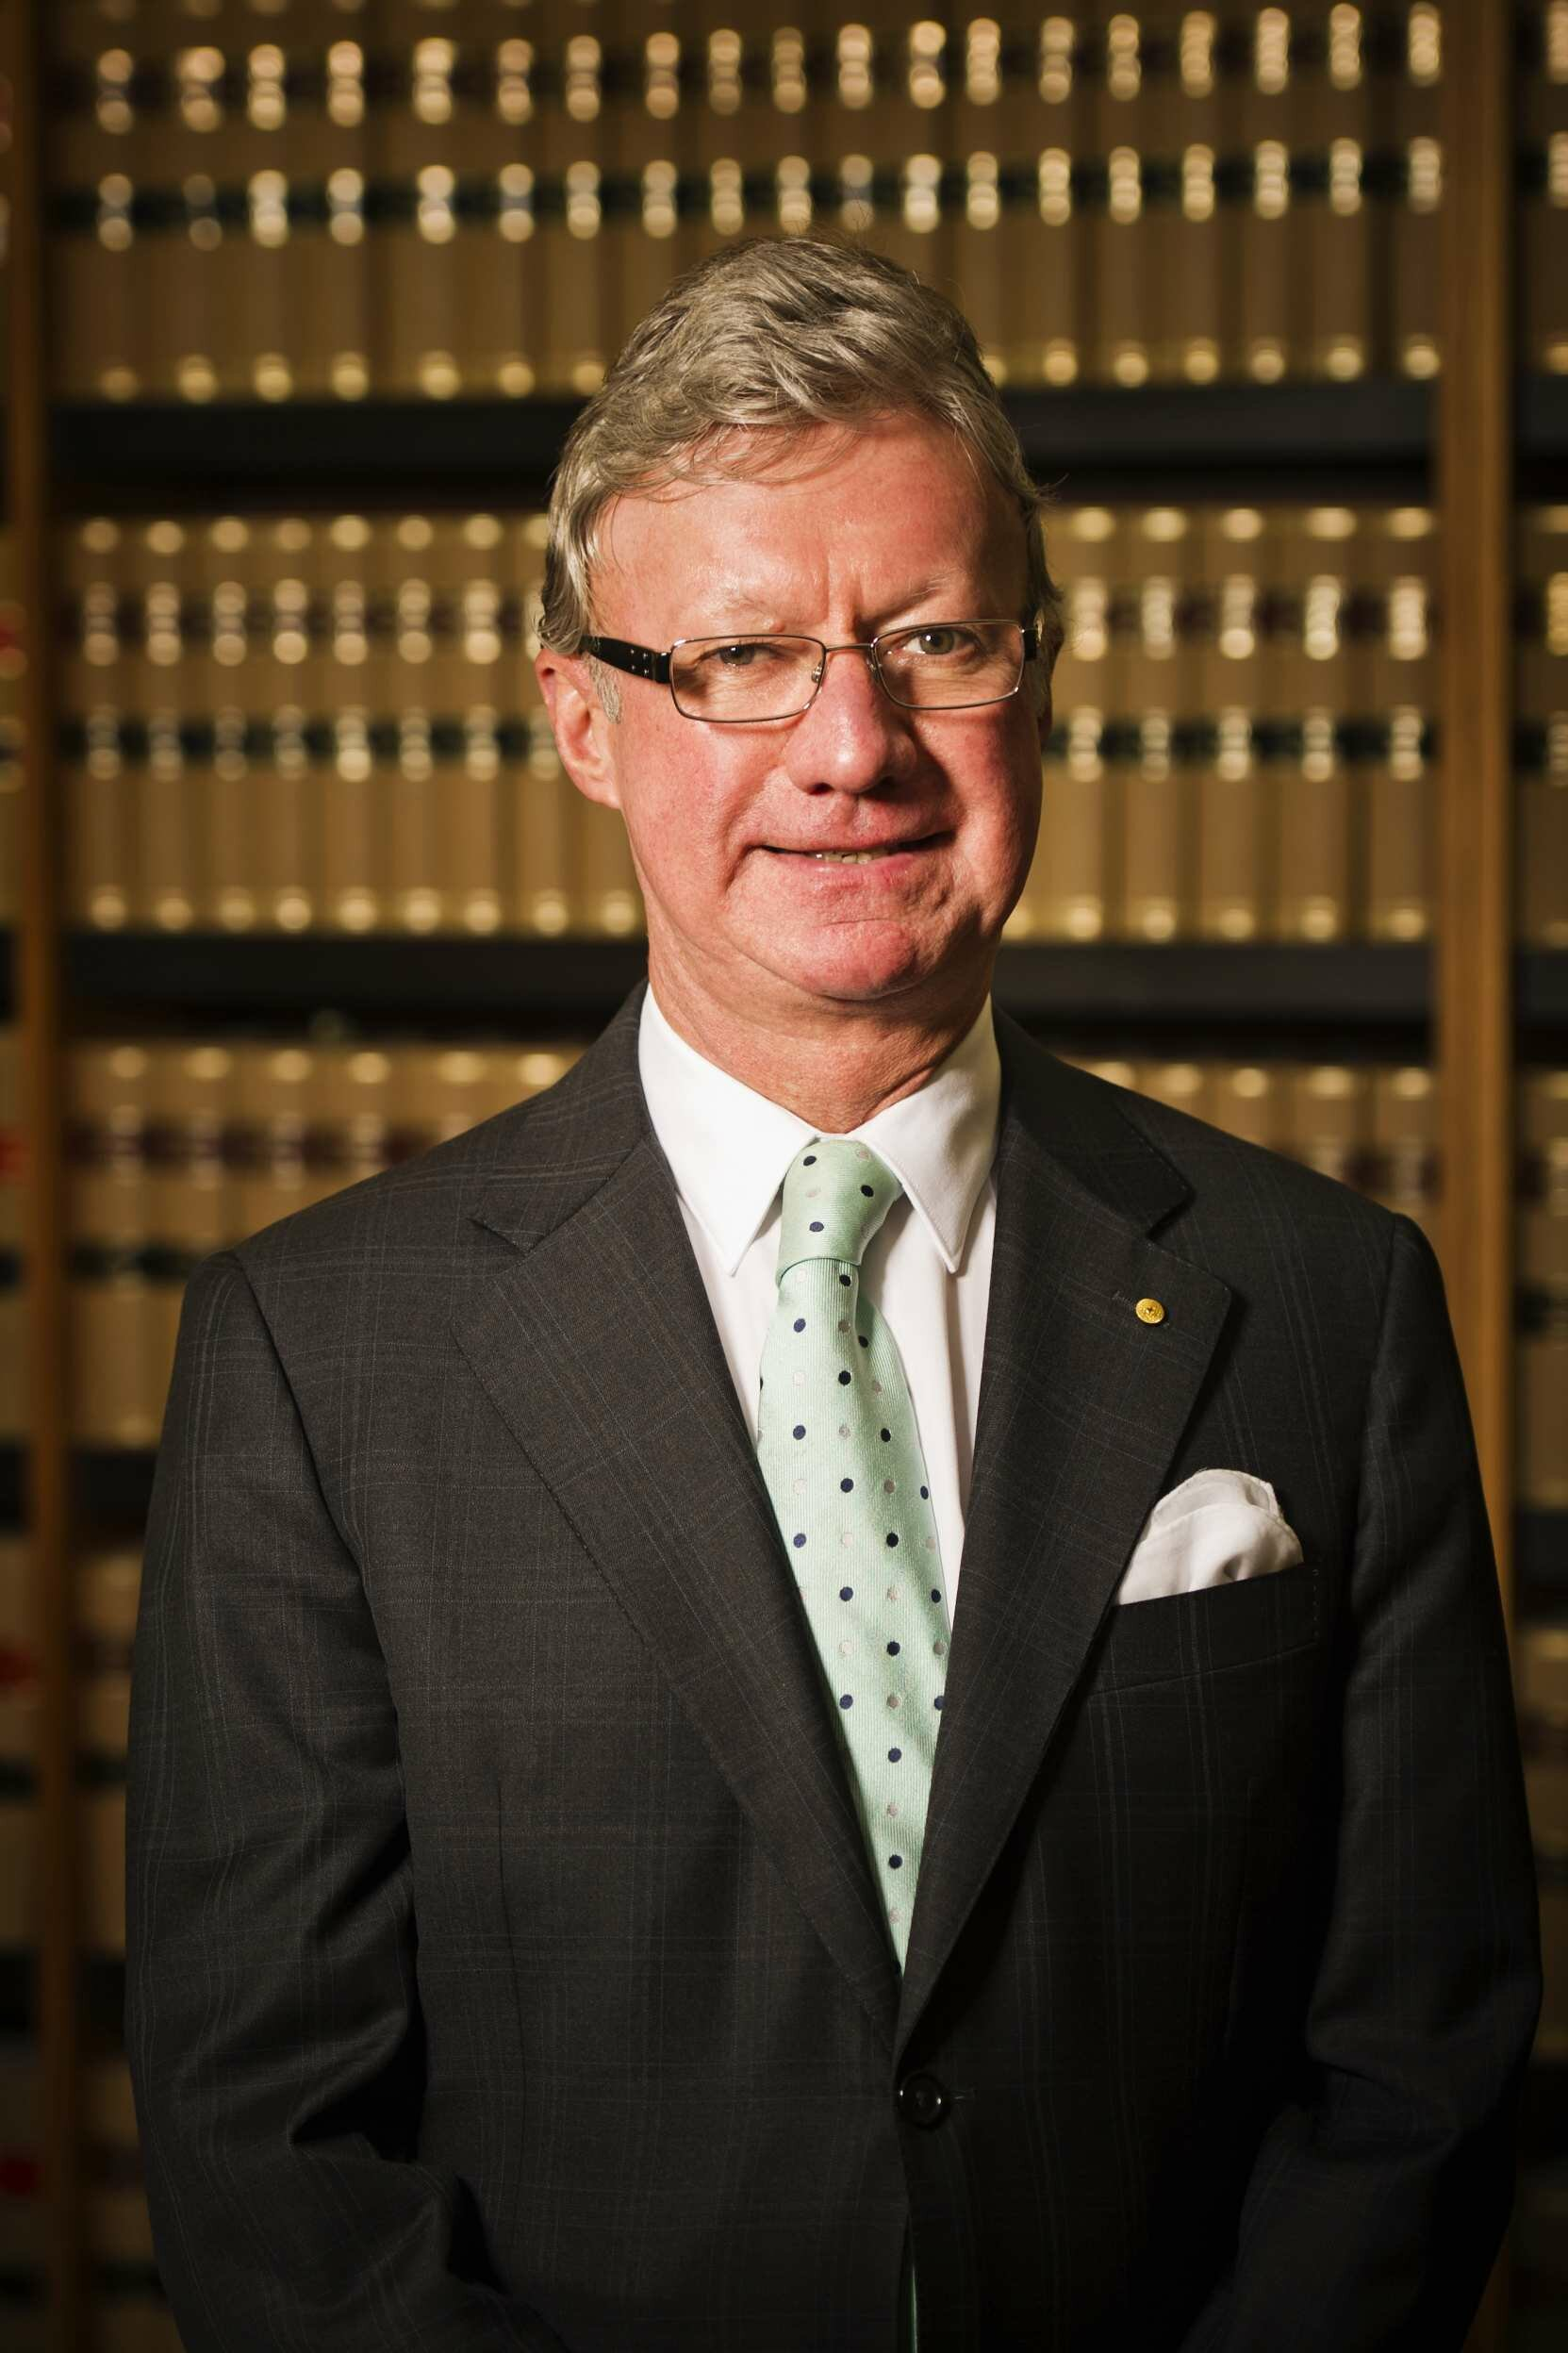 The Hon Paul de Jersey AC